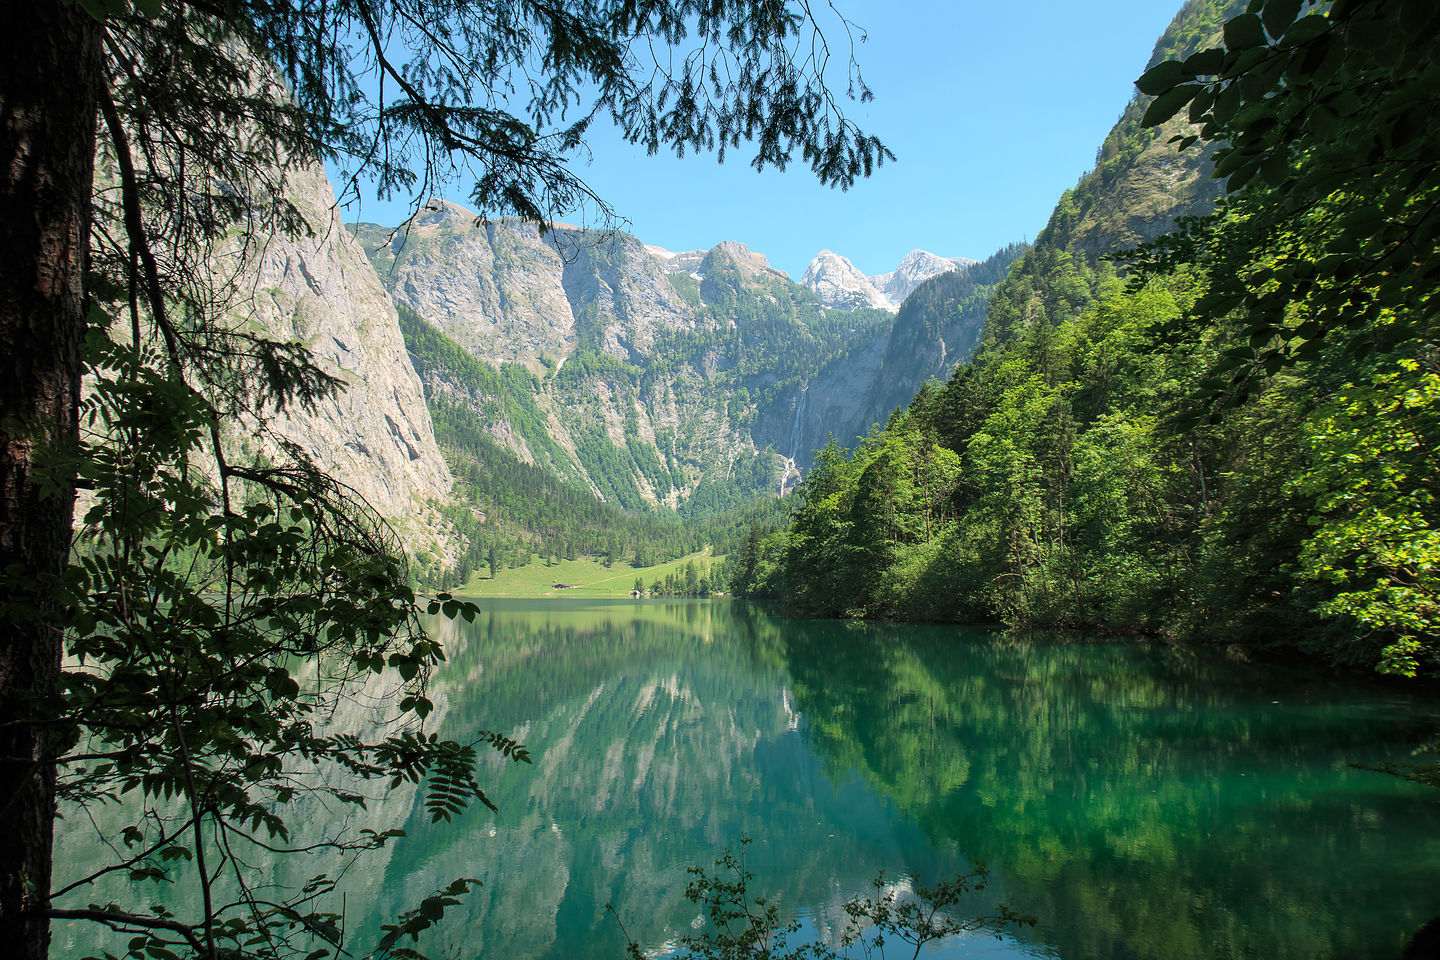 The Obersee on our hike to the Rothbachfall